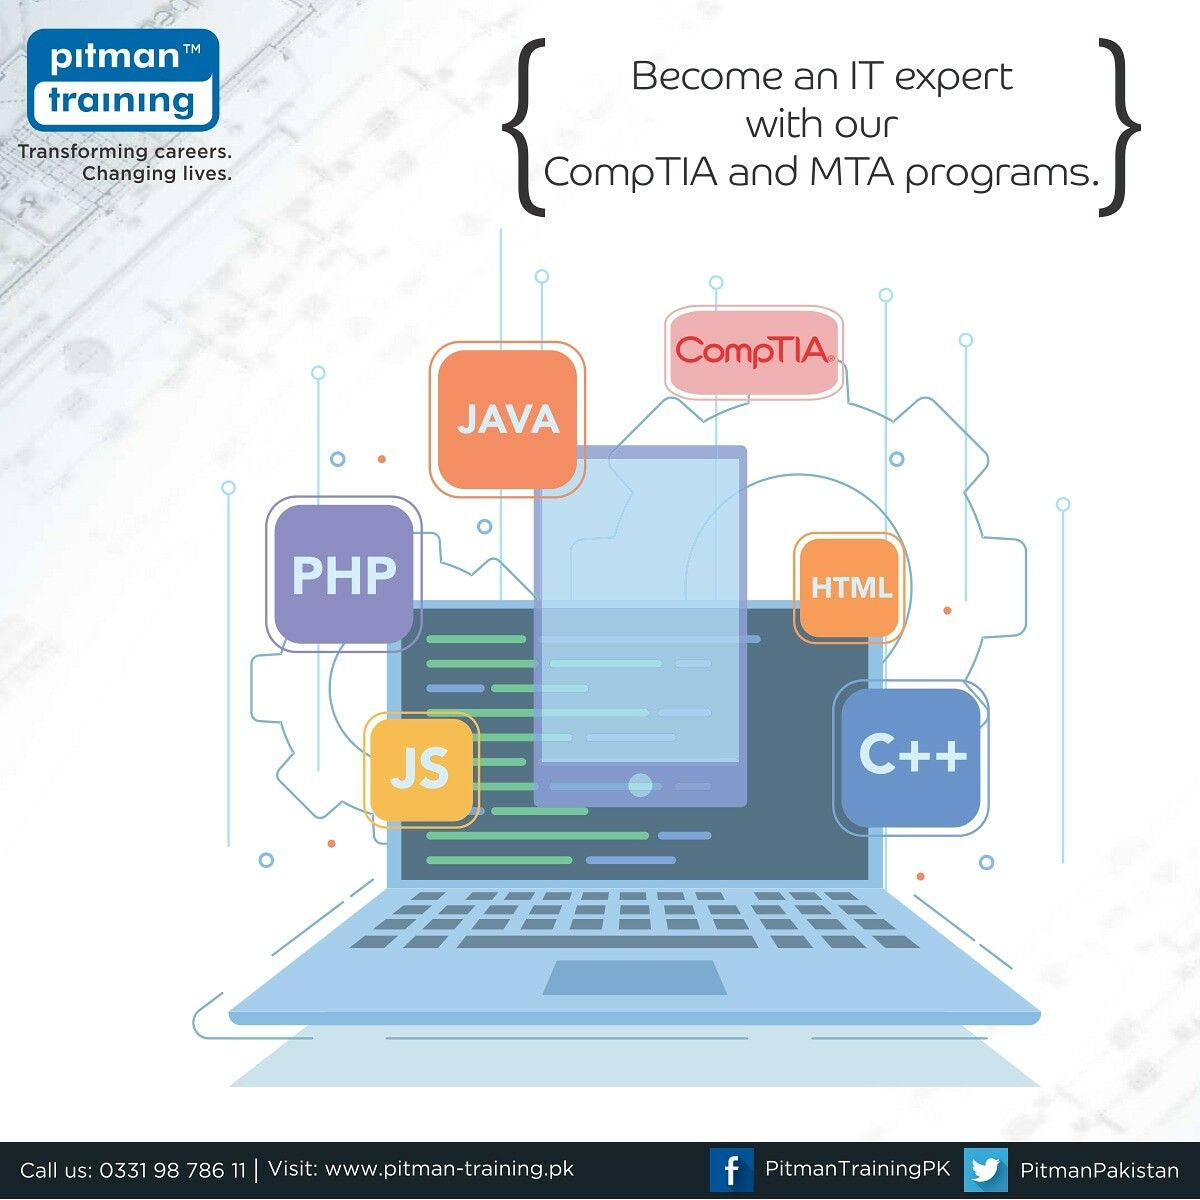 If you are looking to work in the IT industry but feel